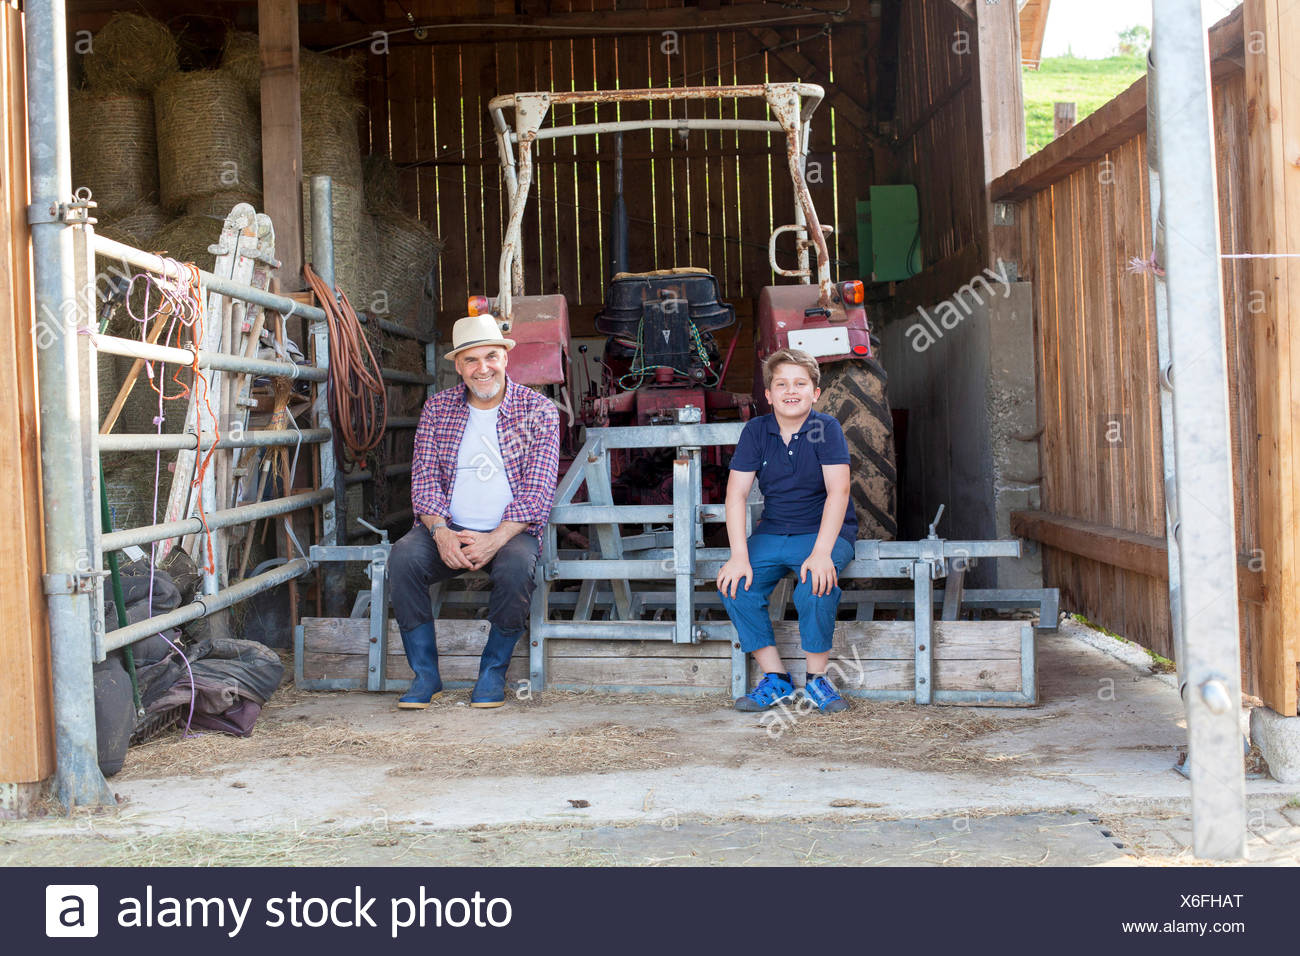 Grandfather and grandson taking a break in stable - Stock Image